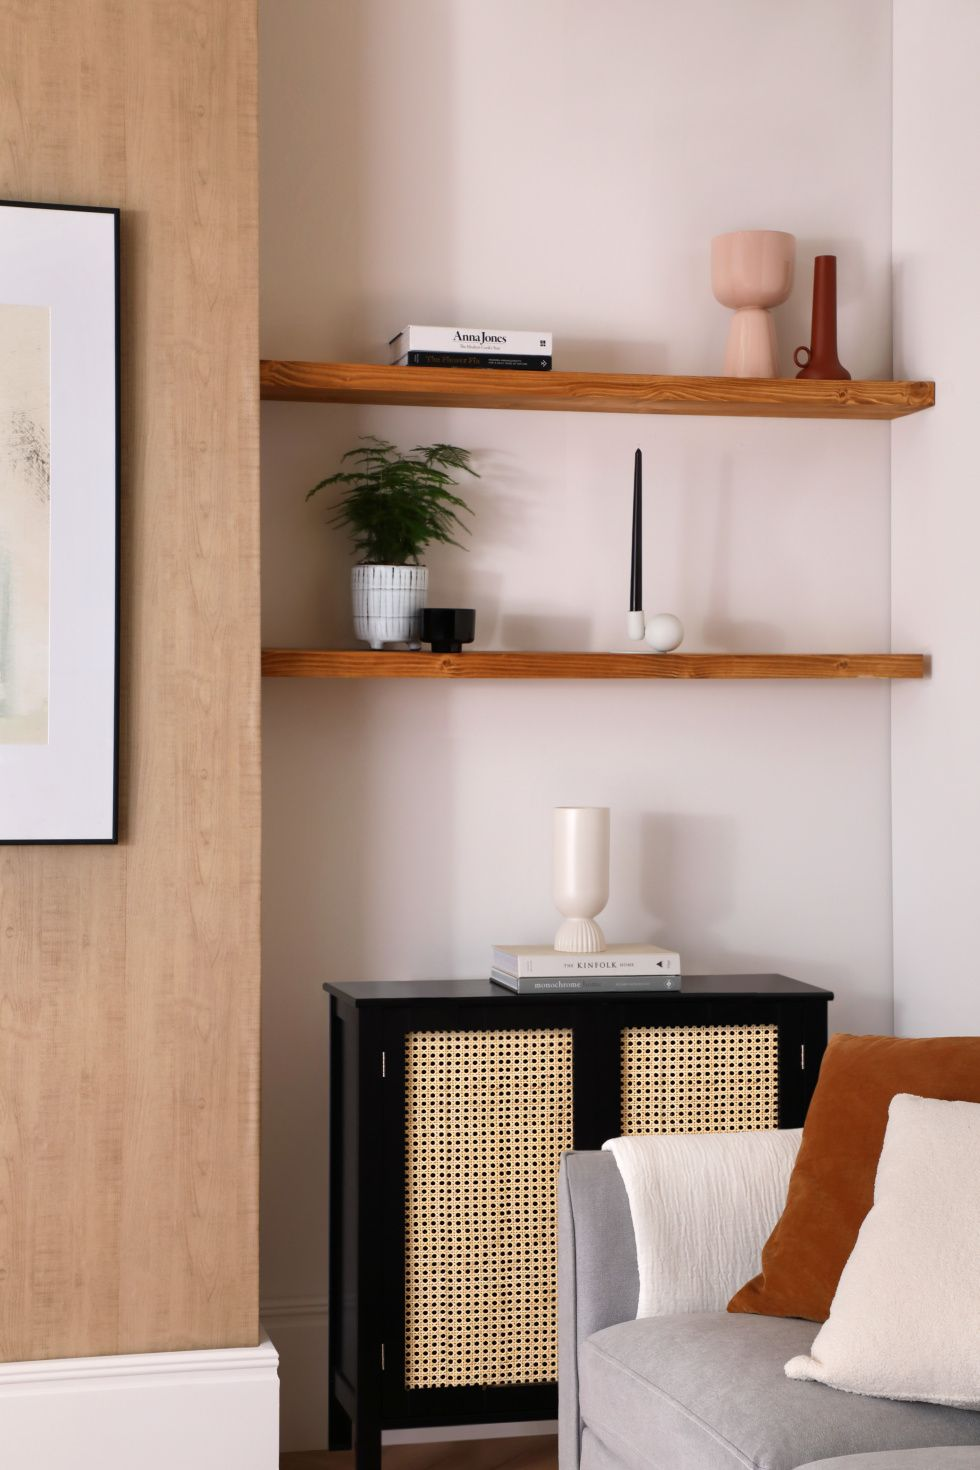 Modern living room with potted plant, vases, books and candle on the wooden shelf